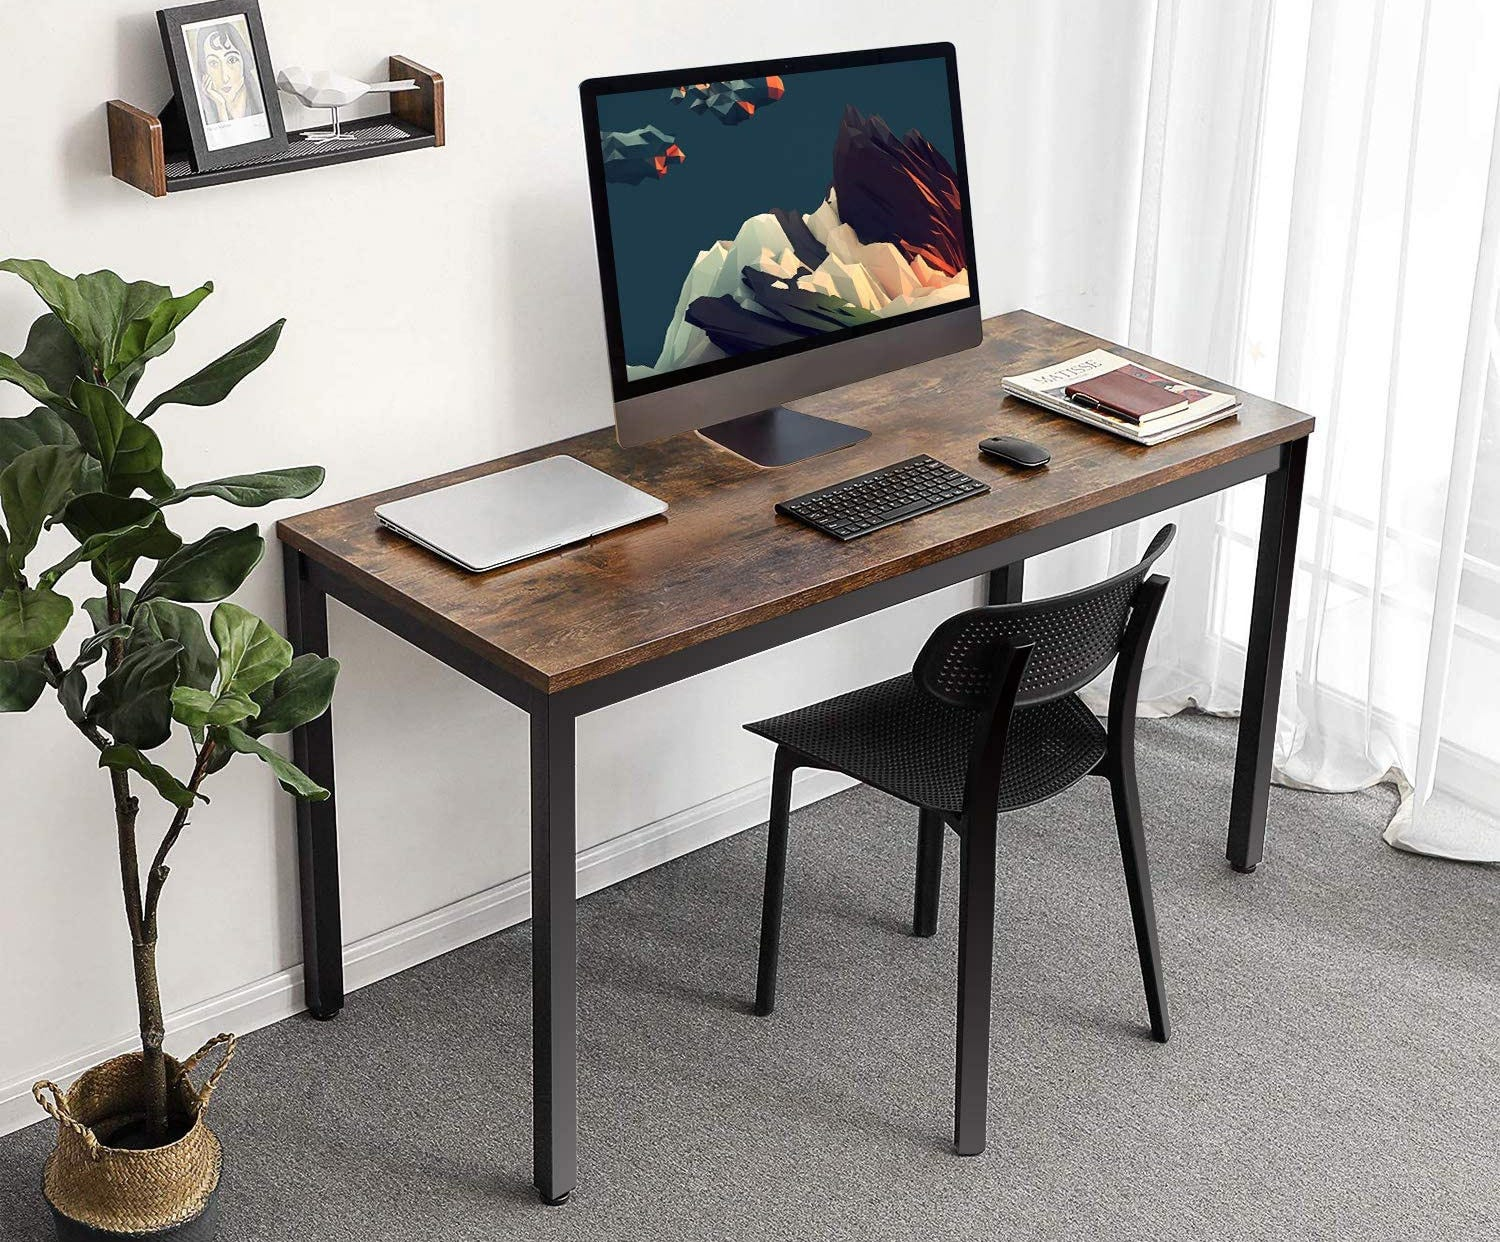 Computer table with iMac